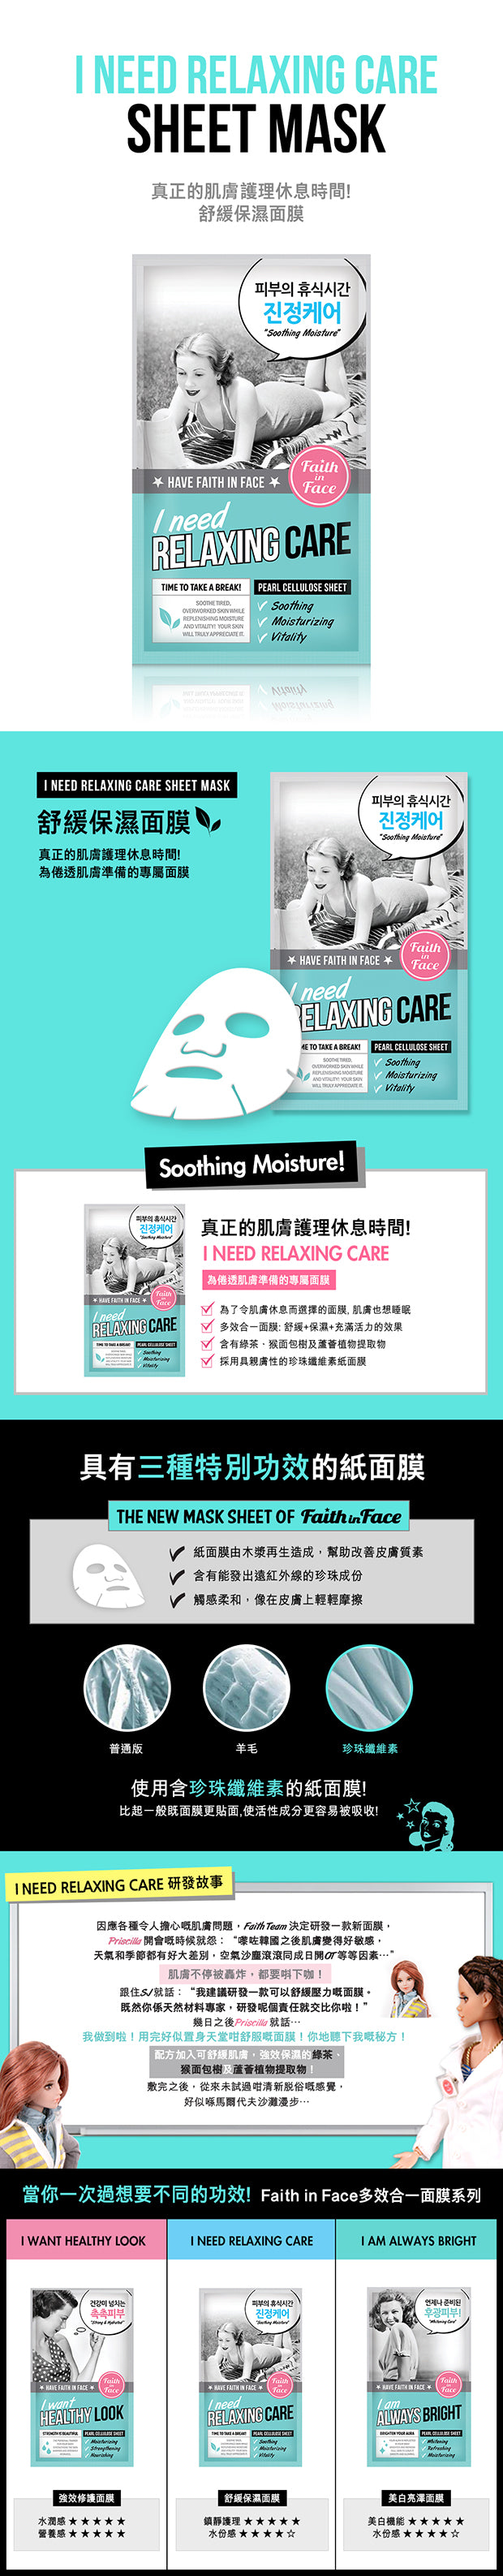 Faith in Face I Need Relaxing Care Sheet Mask 舒緩保濕珍珠纖維面膜